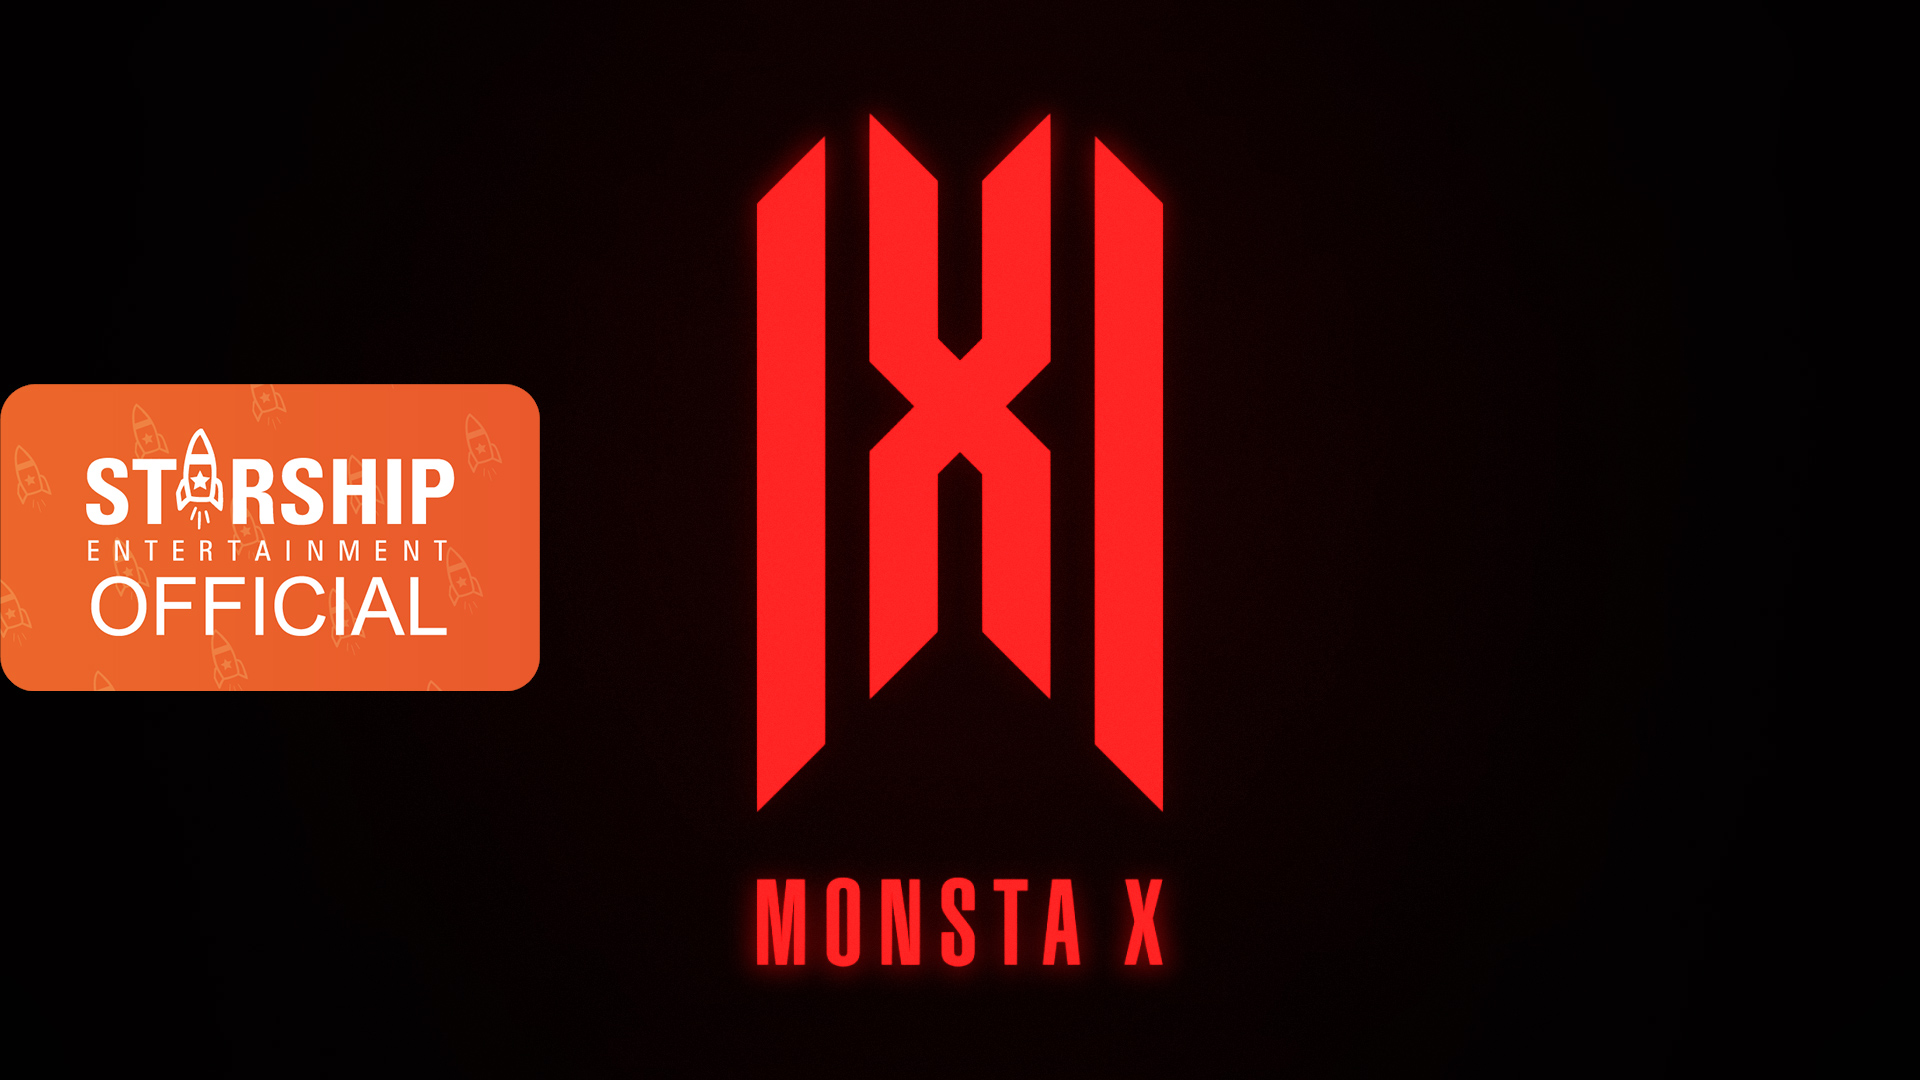 MONSTA X (몬스타엑스) Official LOGO MOTION